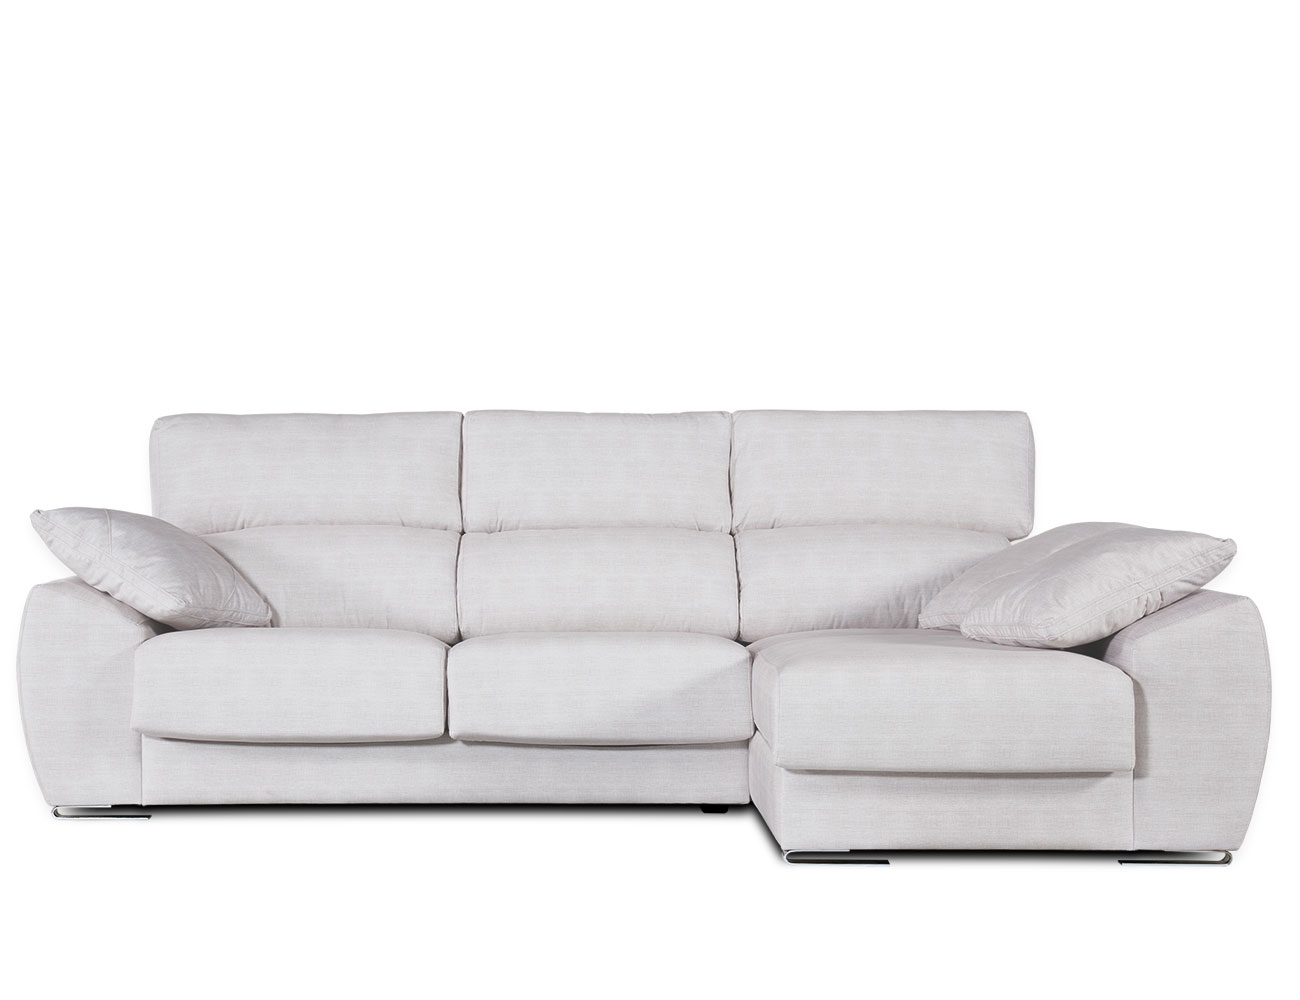 Sofa chaiselongue moderno blanco5